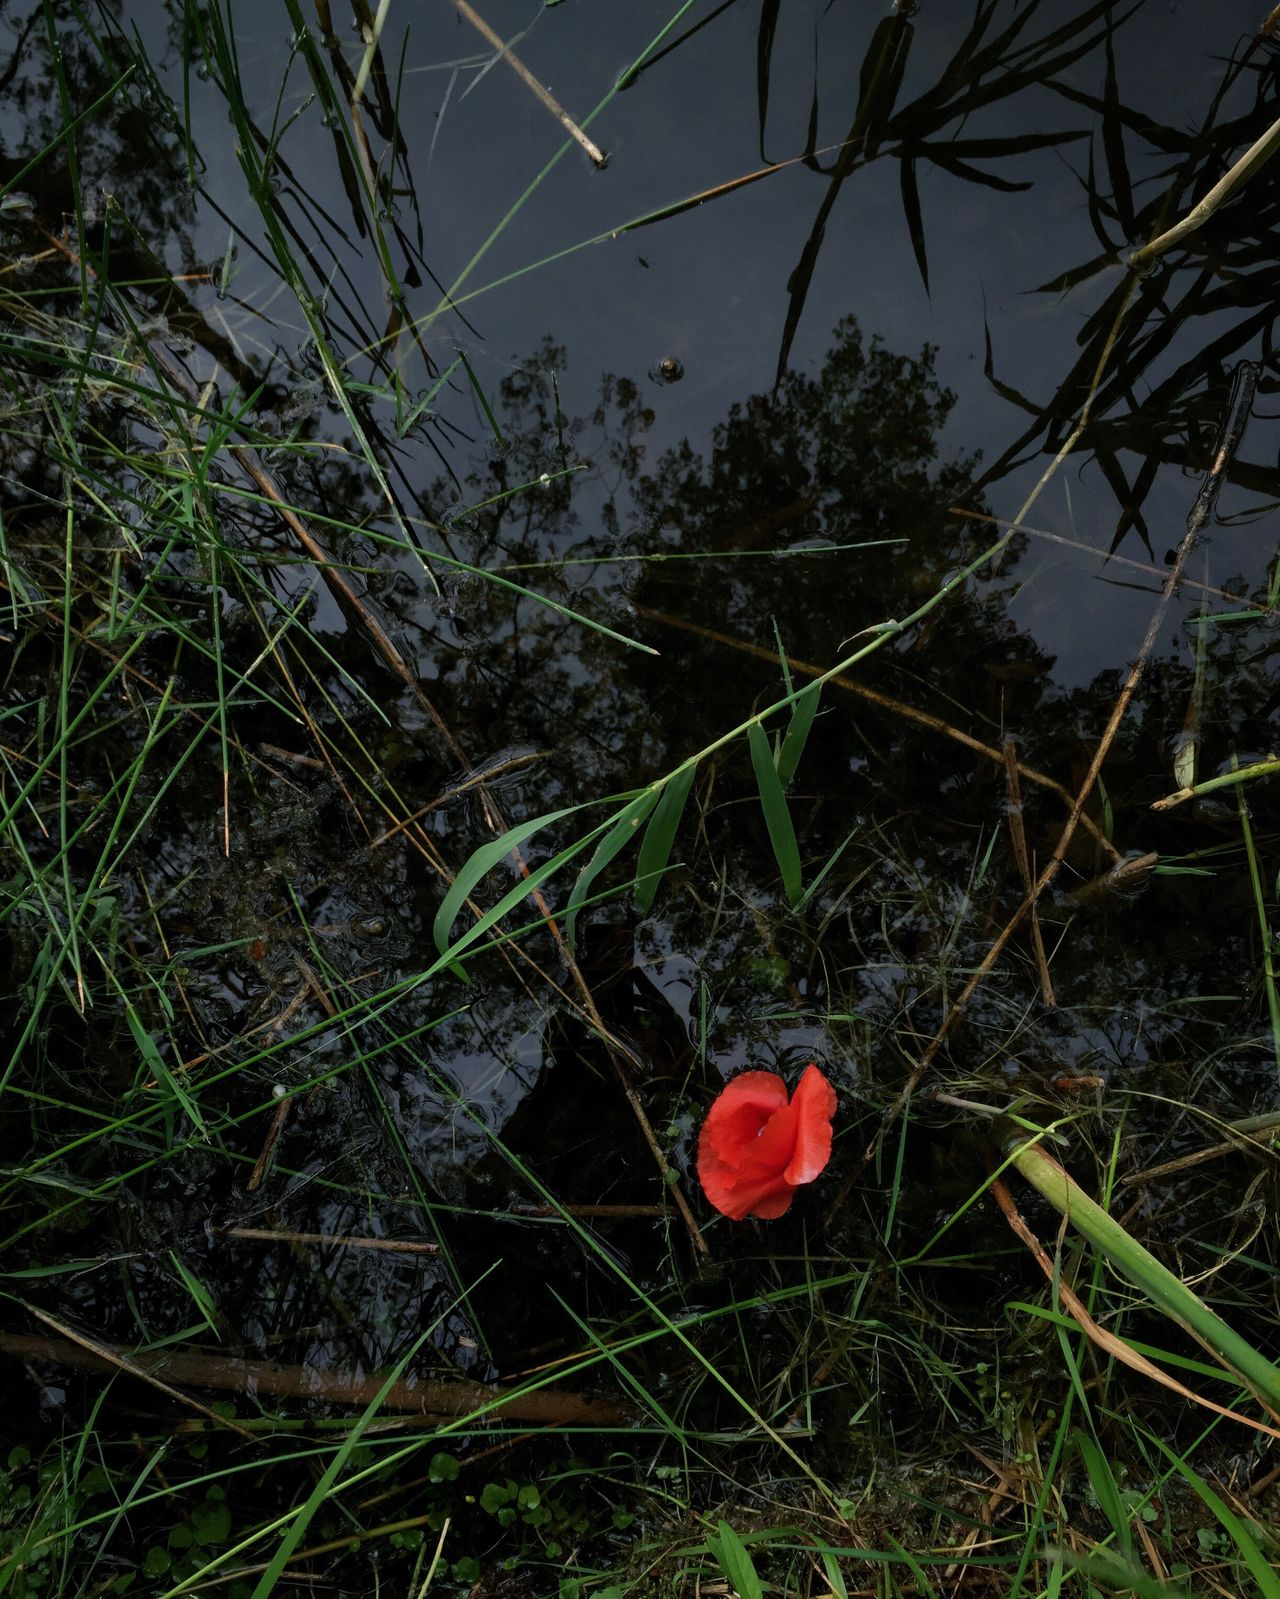 Red poppy flower in the pond Growth Nature Heart Shape No People Plant Red Outdoors Flower Beauty In Nature Love Grass Day Close-up Fragility Tree Freshness Poppy Flowers Pond Dark Mysterious Brandenburg Summer